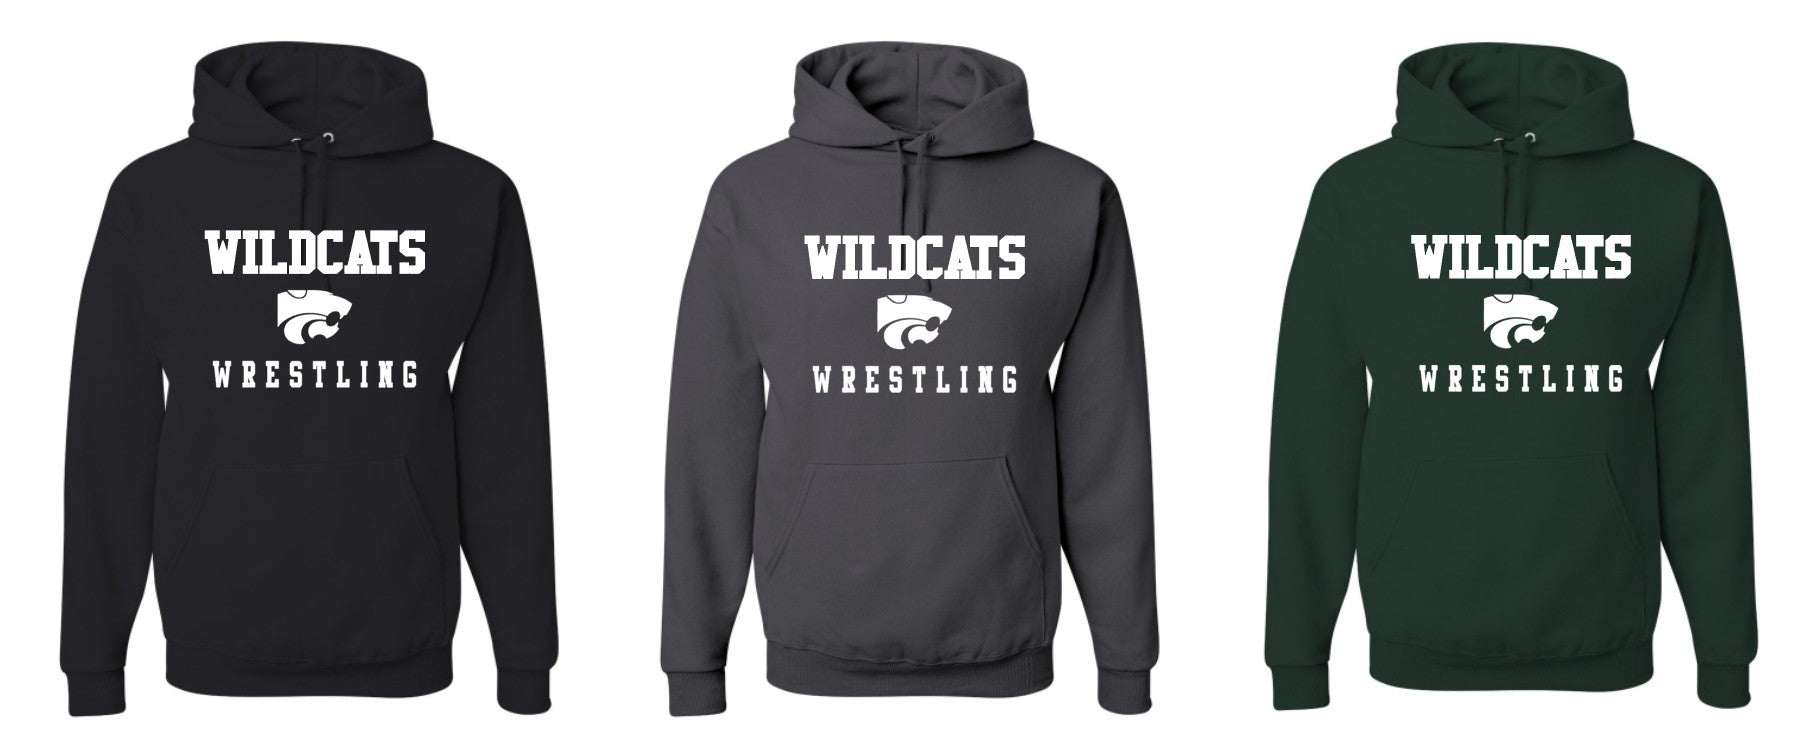 Wildcats Wrestling Traditional Hoodies- BLACK or DARK GREEN